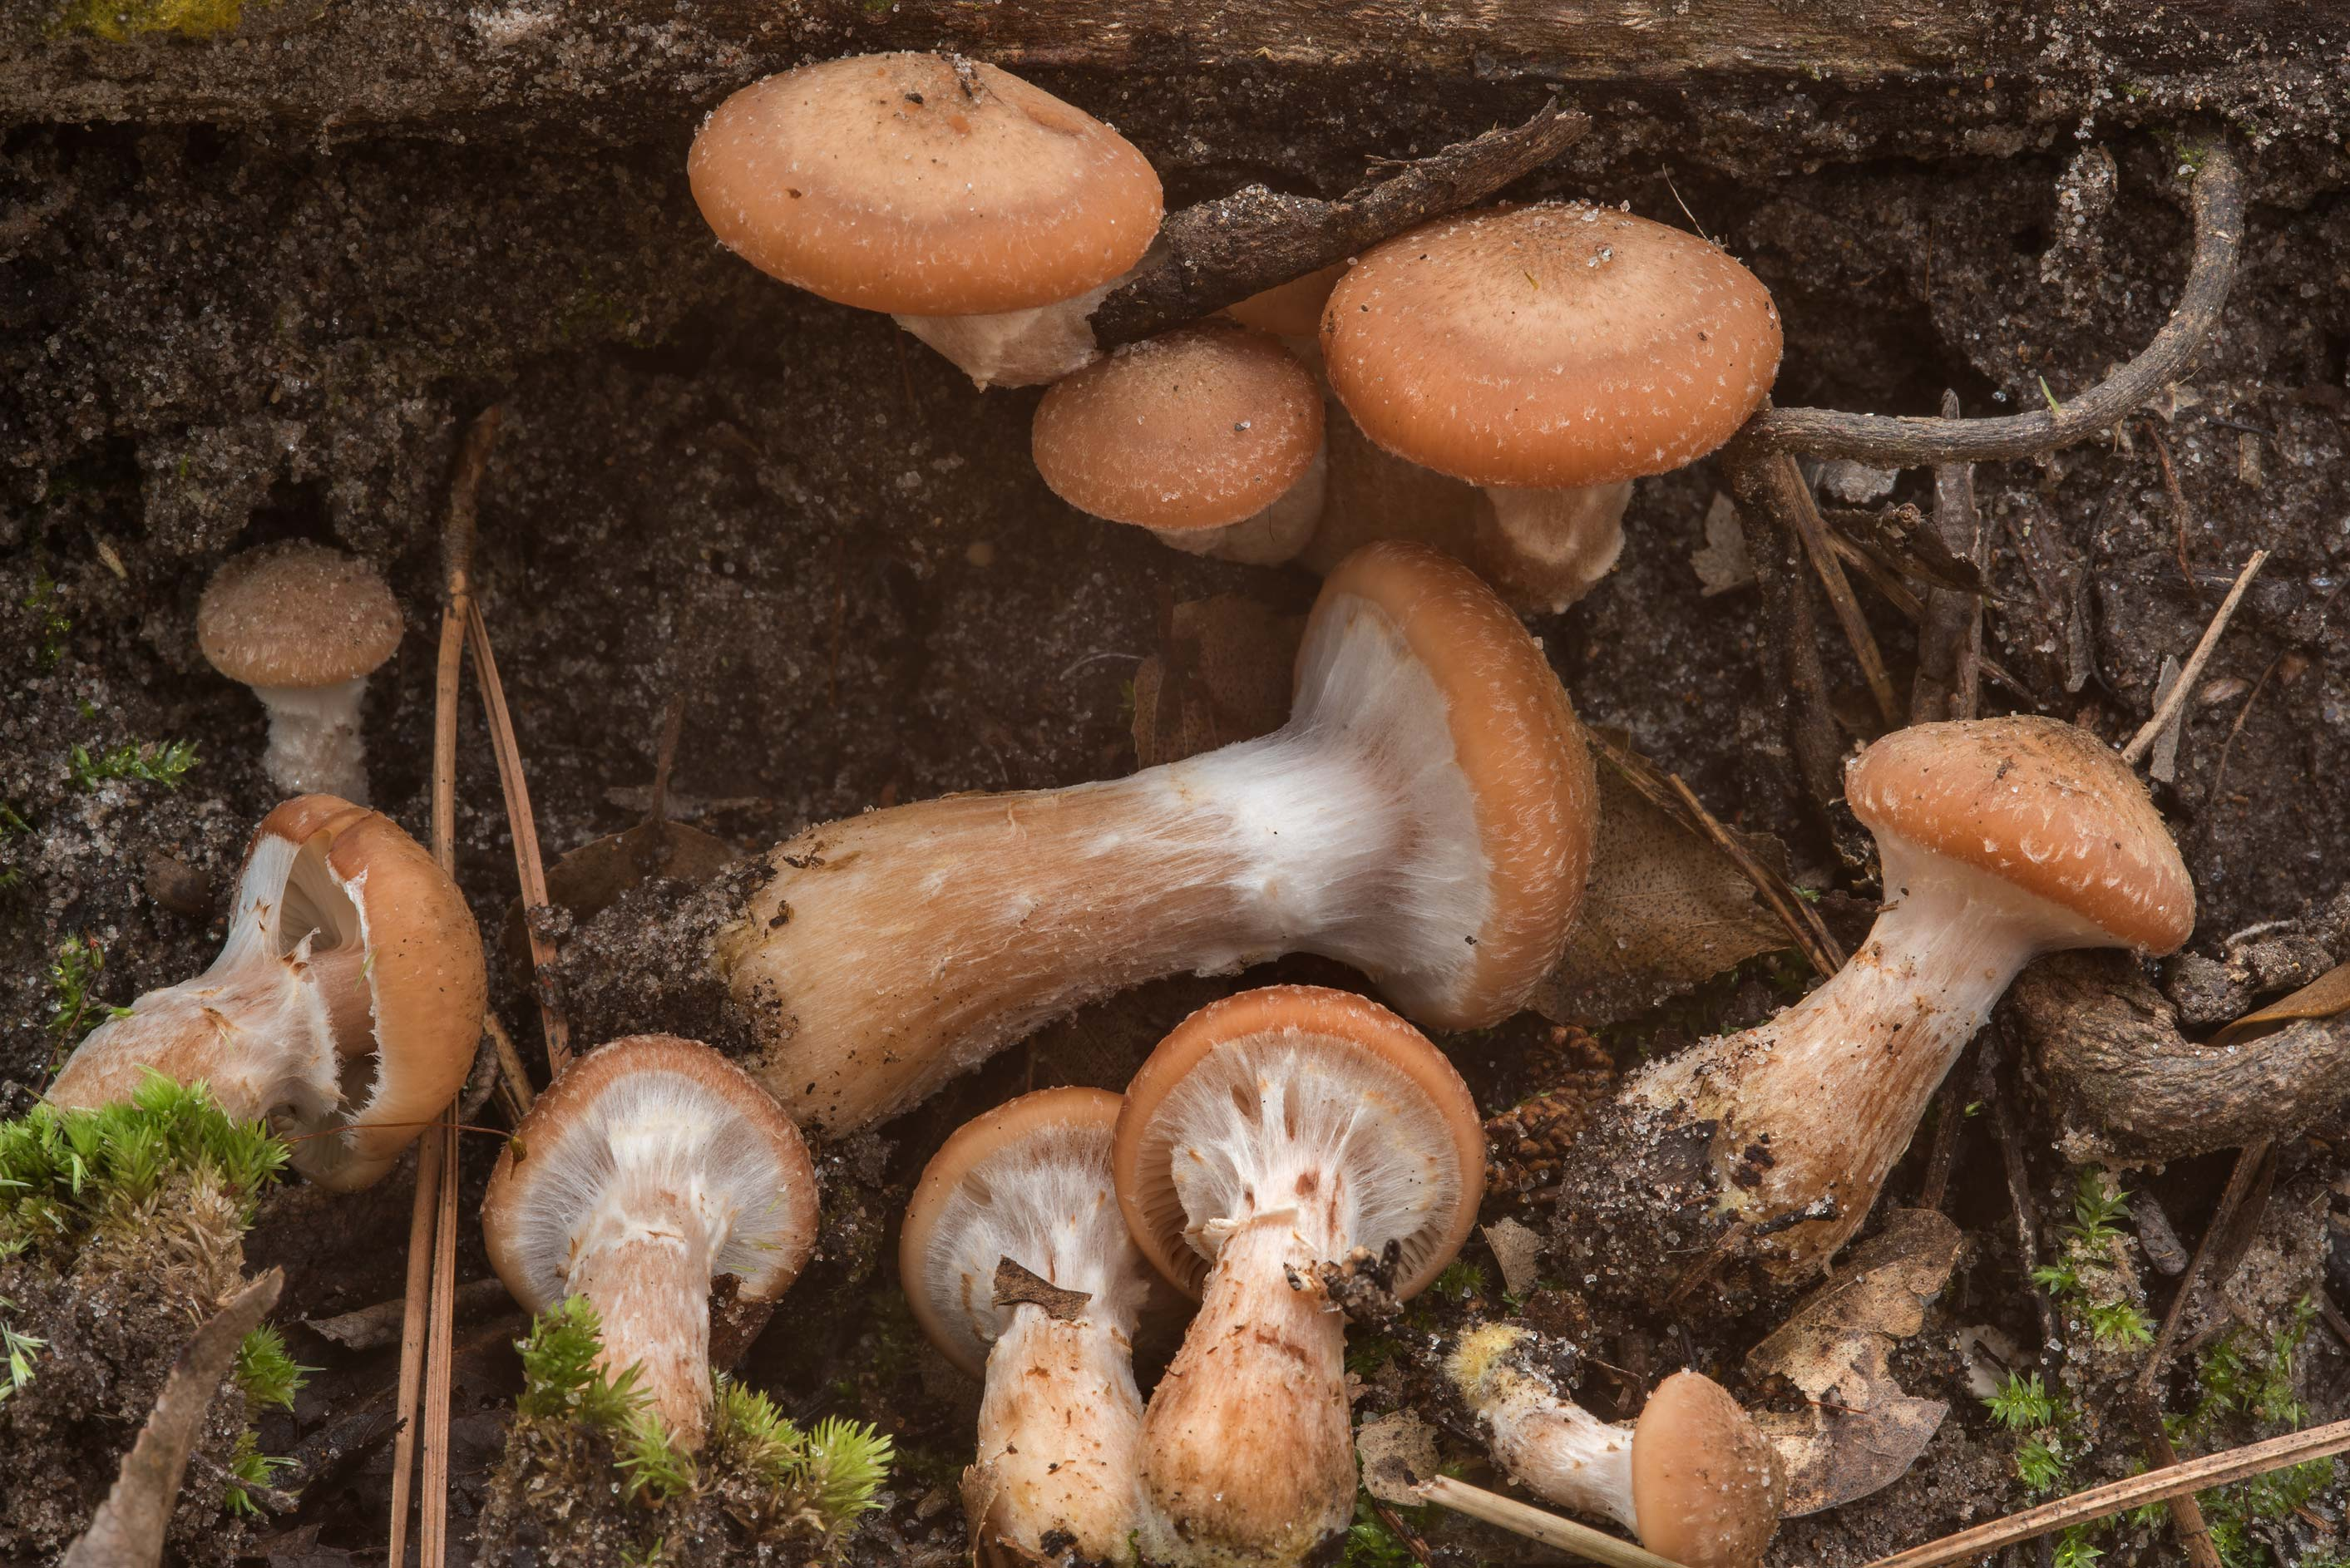 Bulbous honey mushrooms (Armillaria gallica...National Forest near Huntsville. Texas